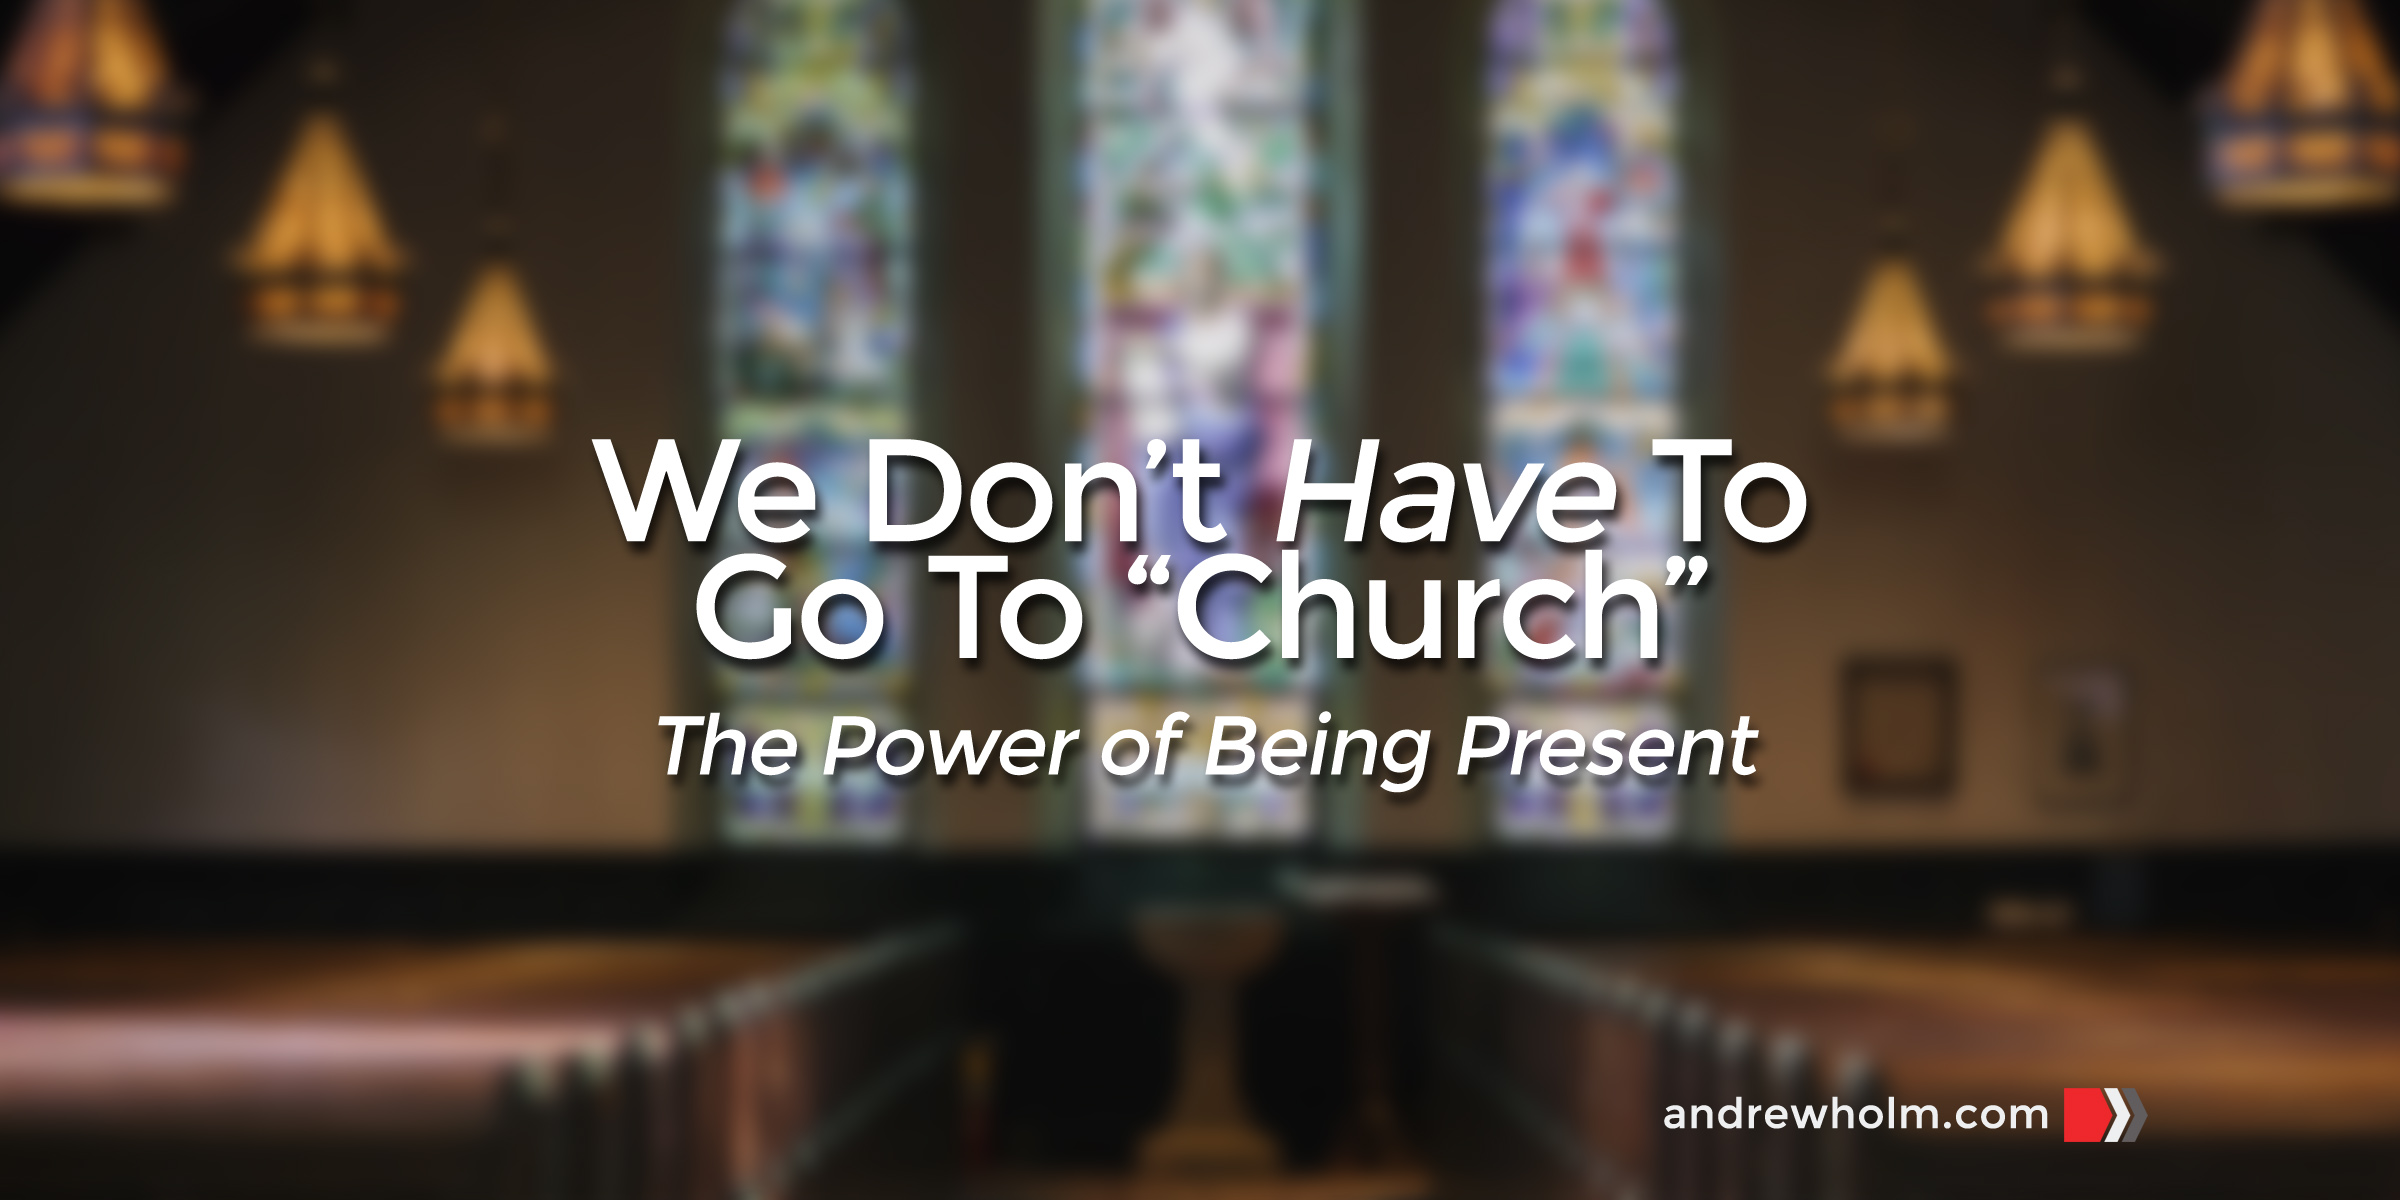 """We Don't Have To Go To """"Church"""""""